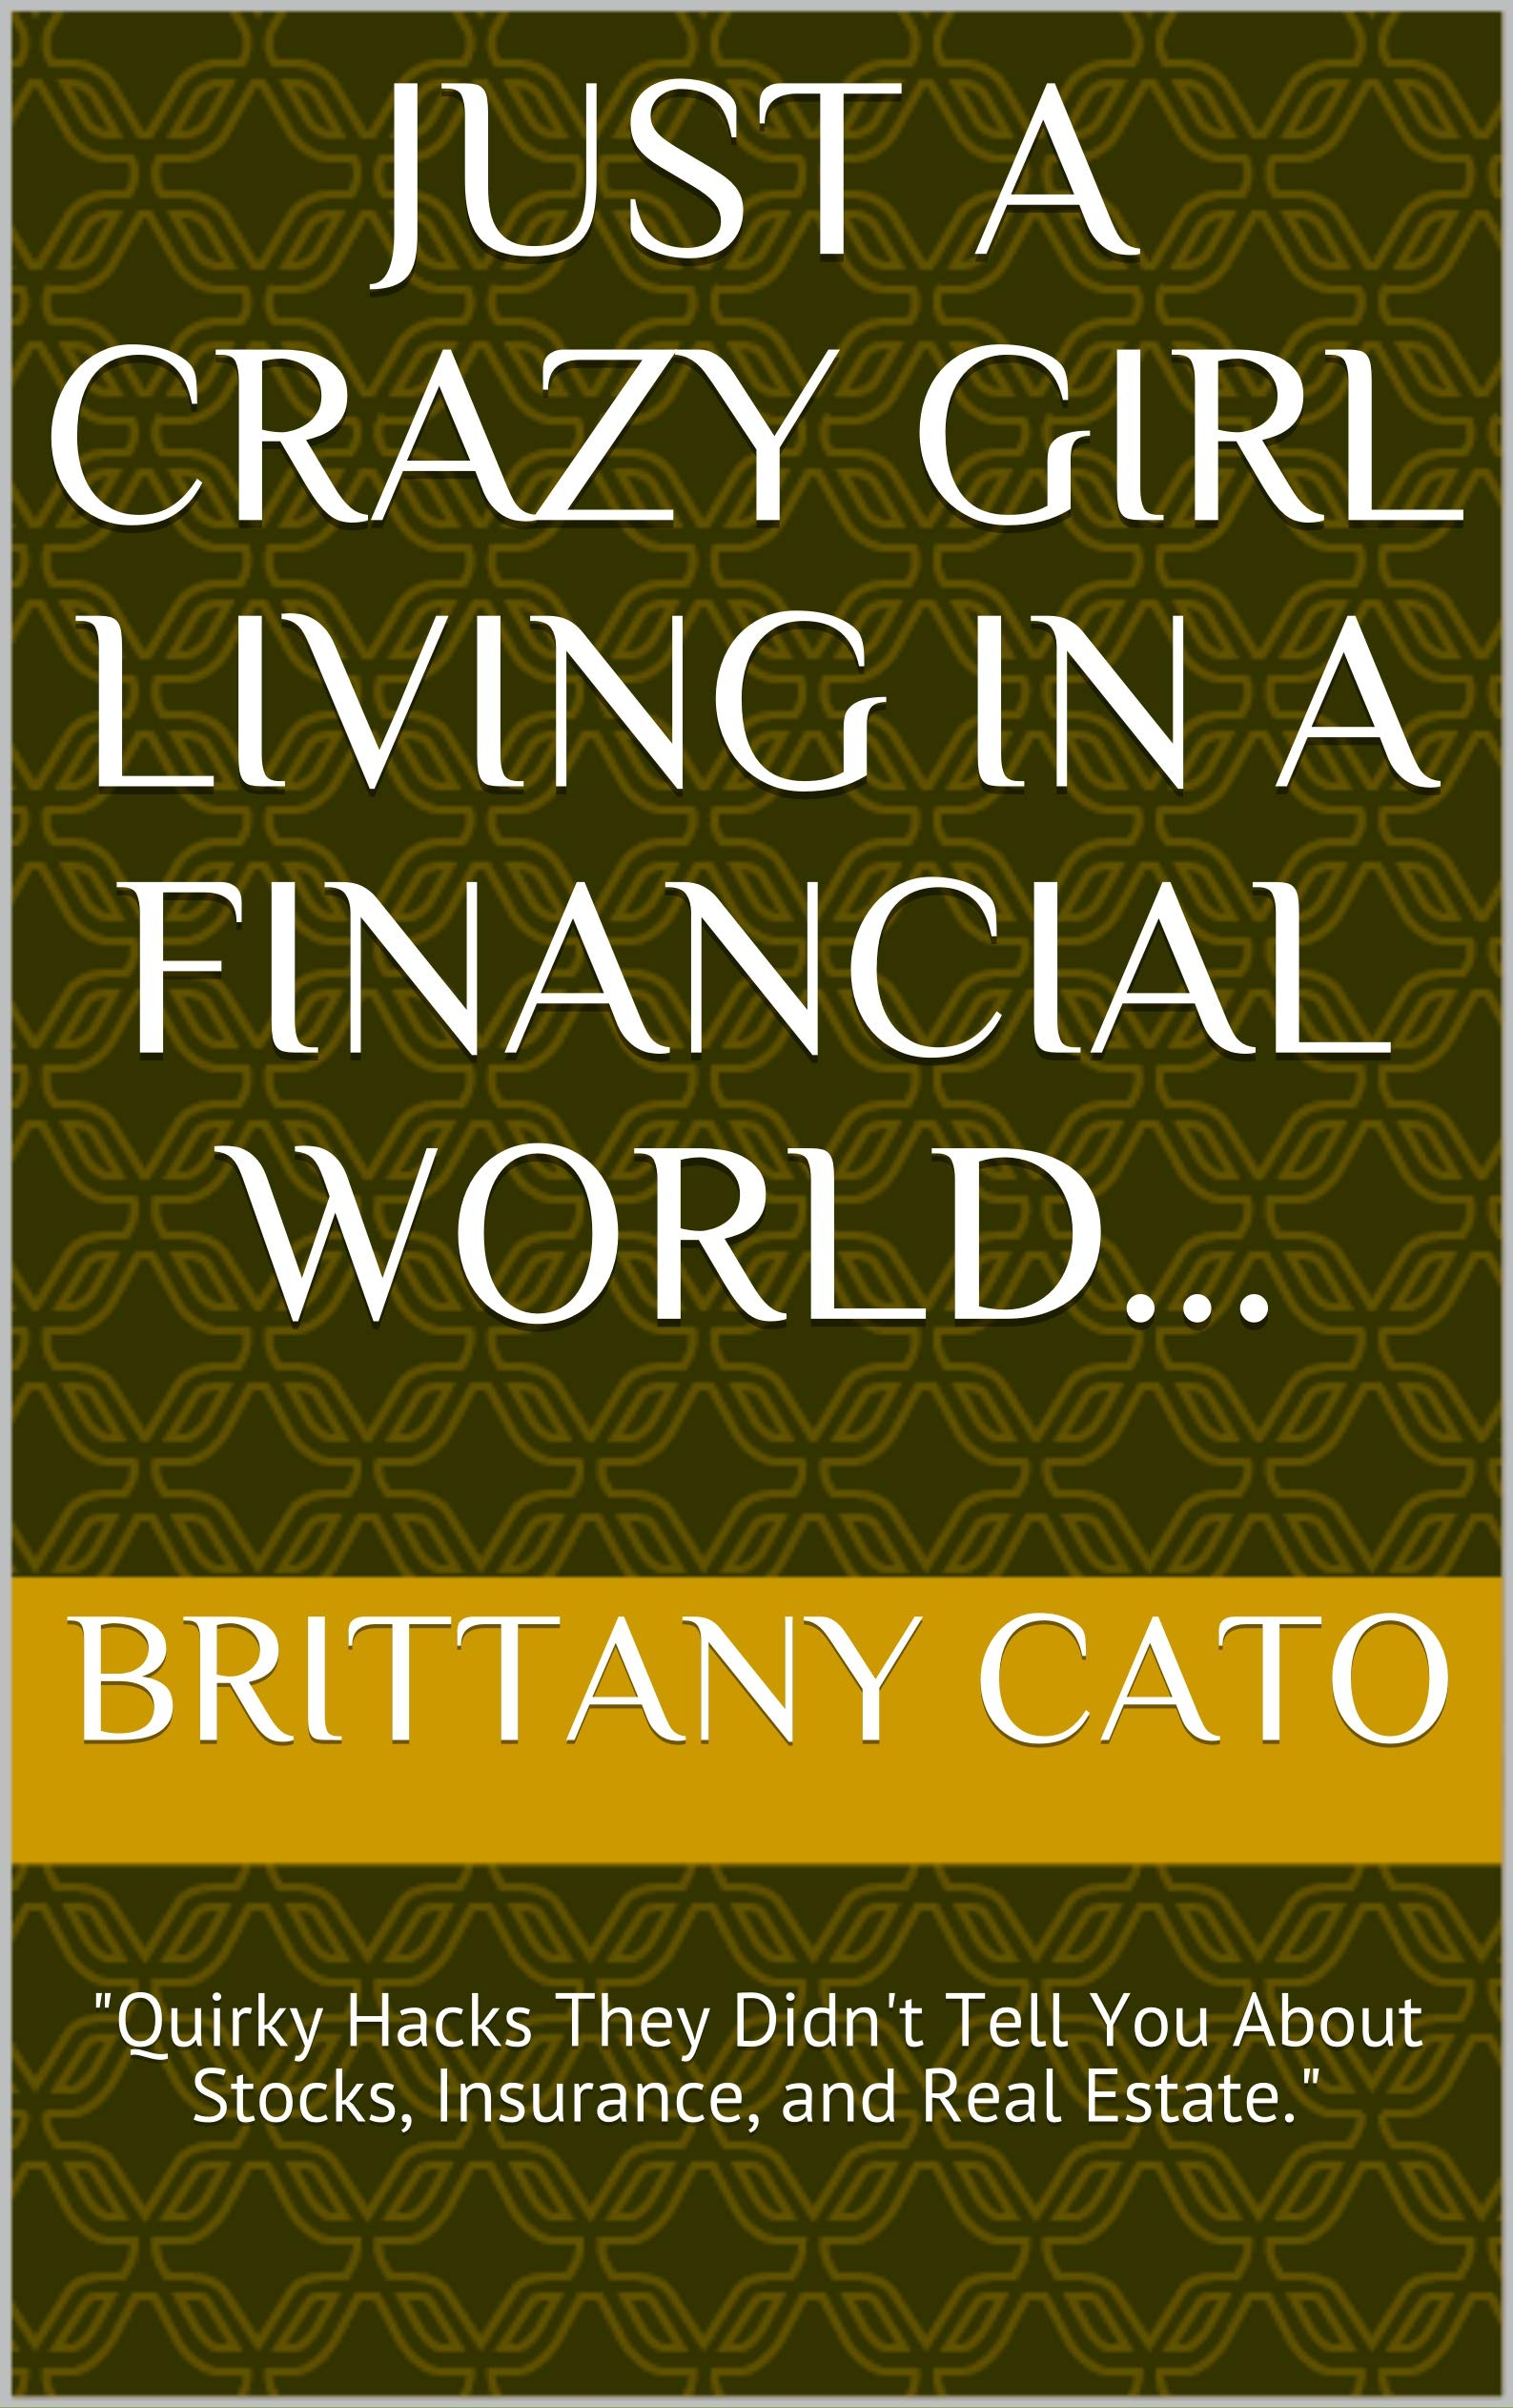 Just A Crazy Girl Living In A Financial World...: